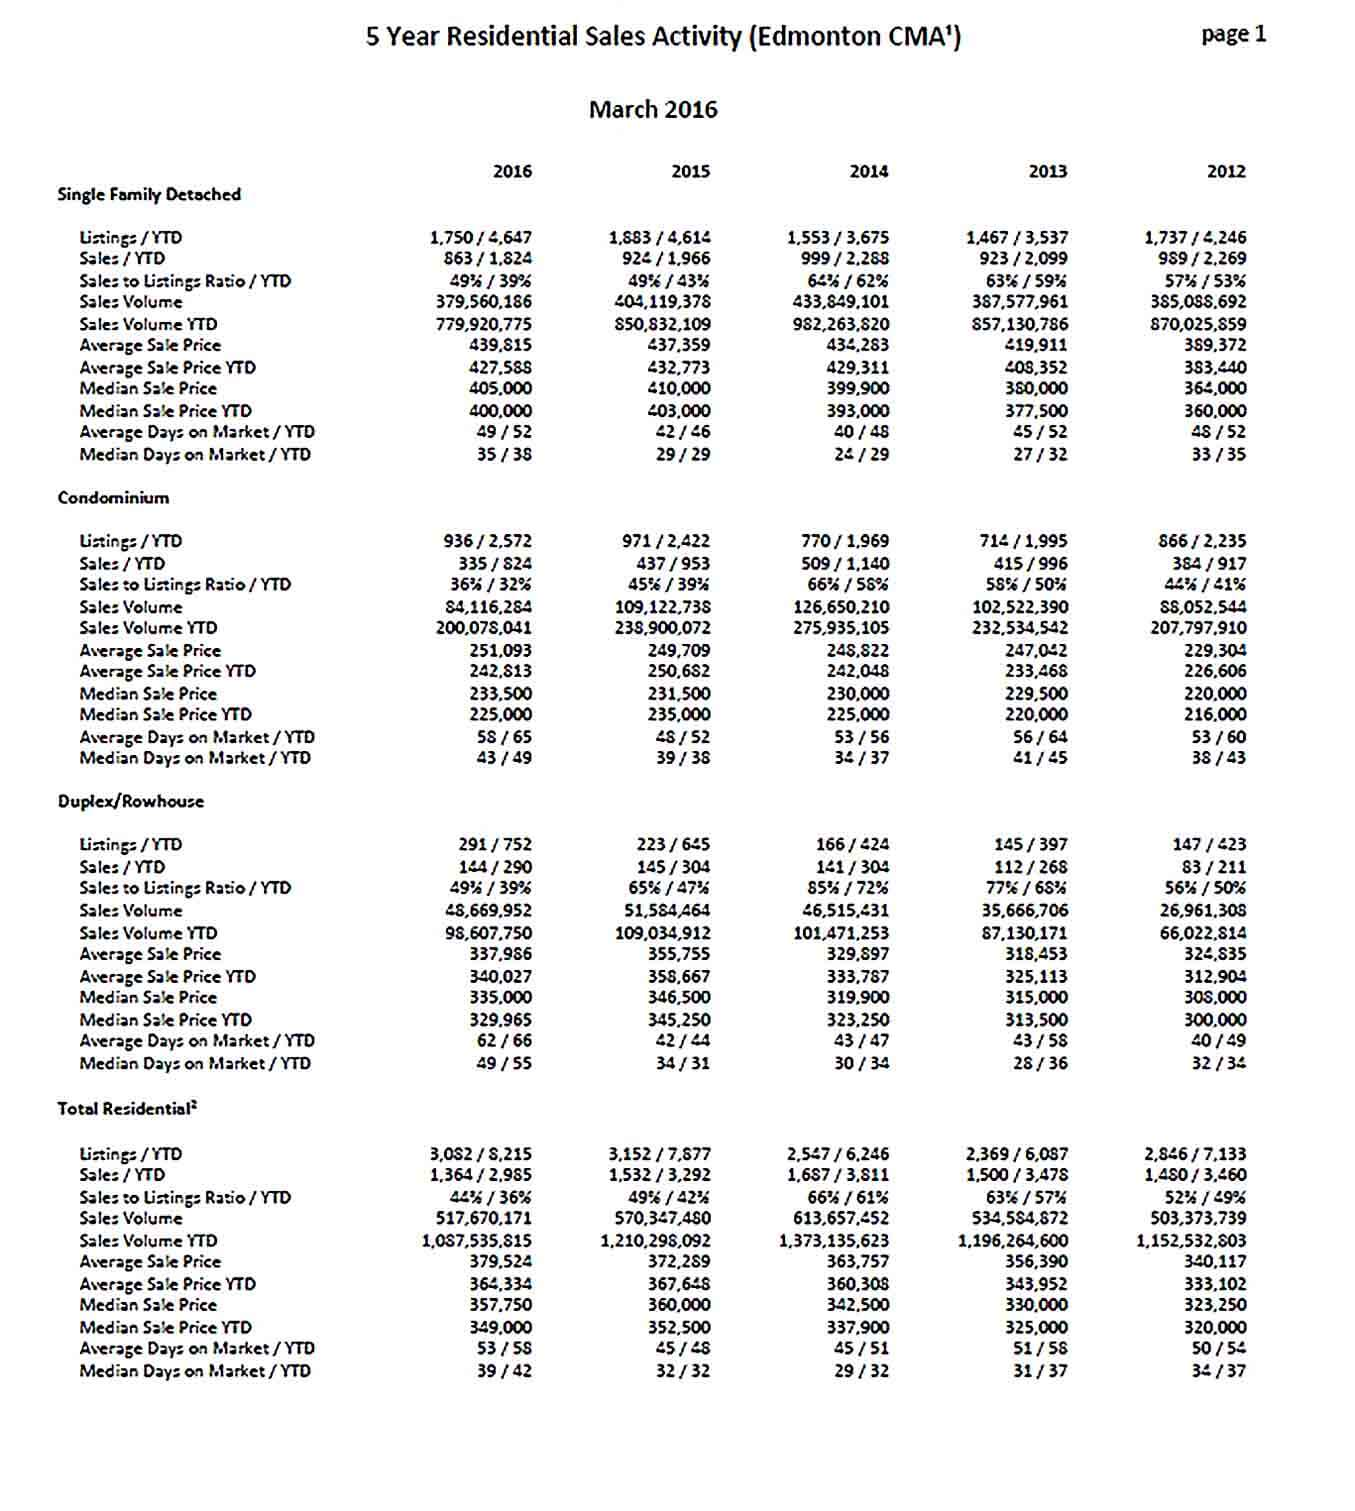 Sample 5 Year Residential Sales Activity Report PDF